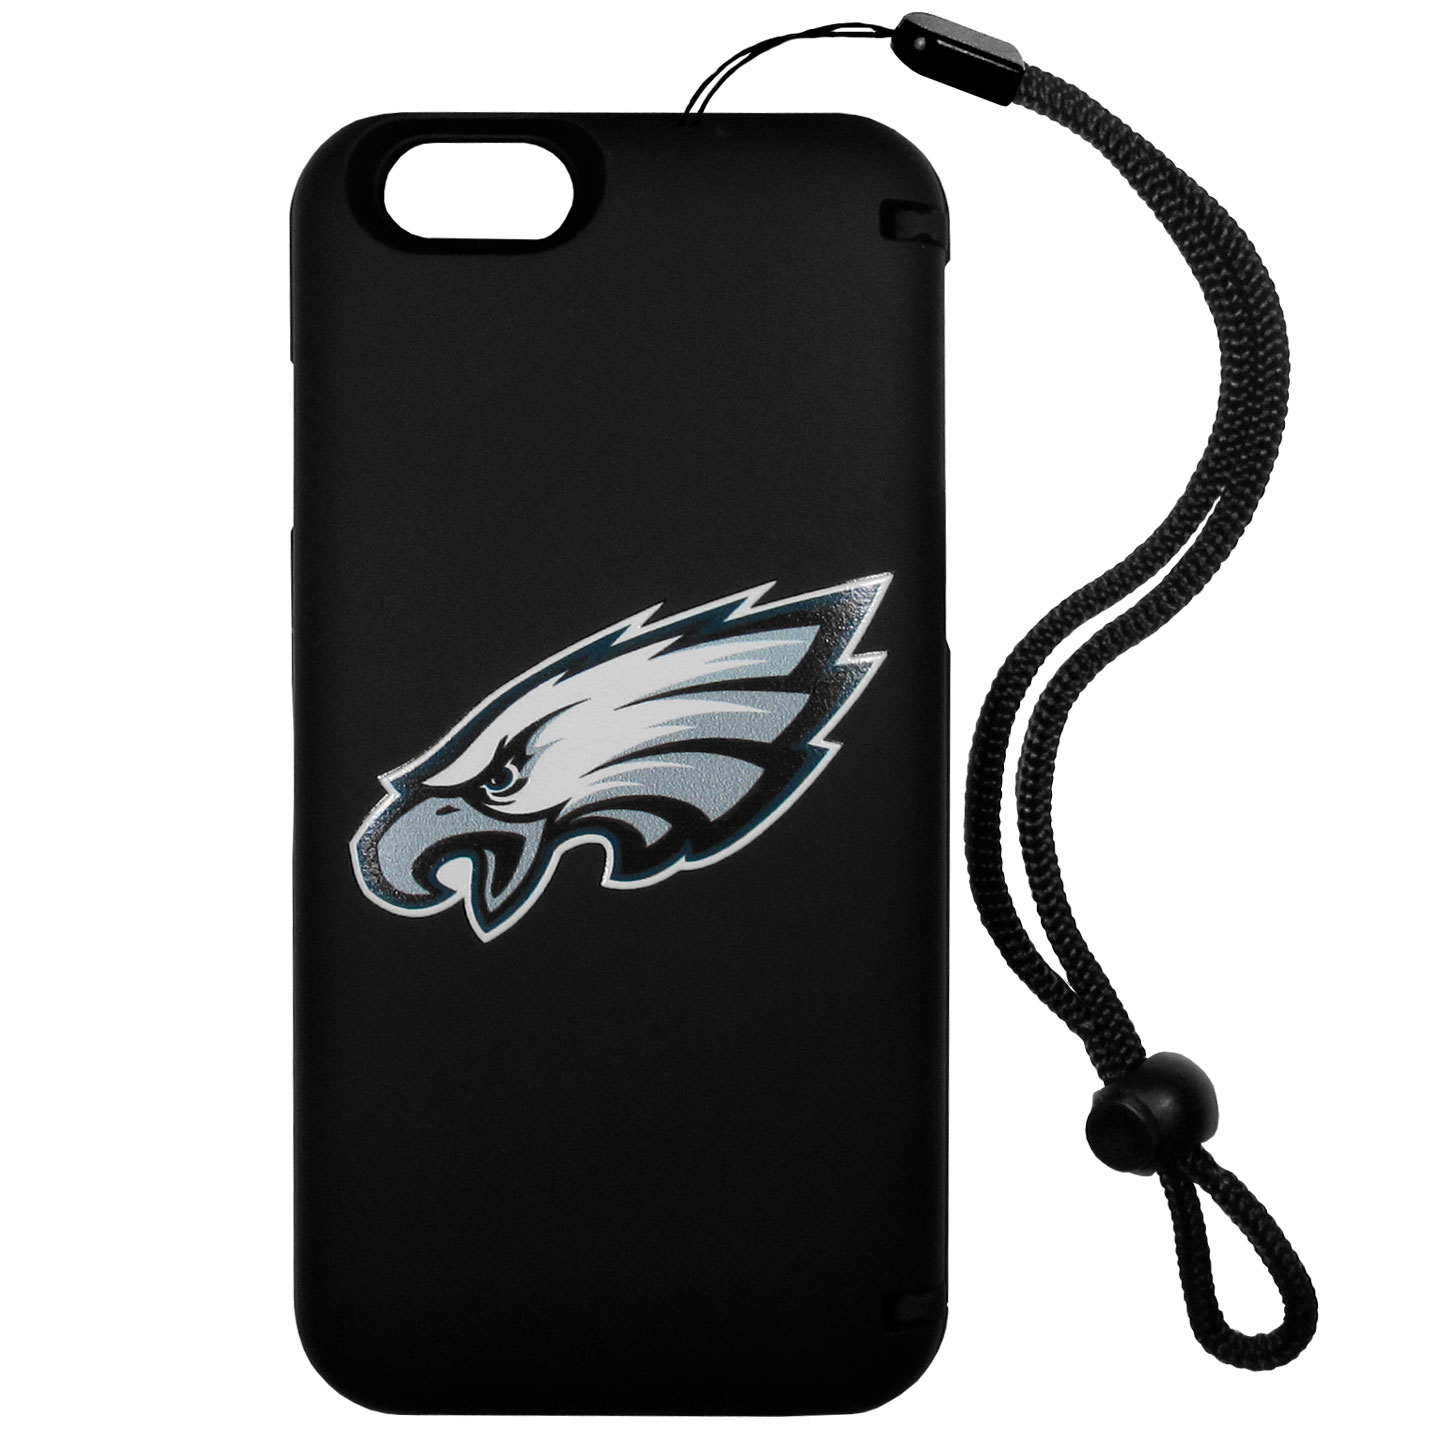 Philadelphia Eagles iPhone 6 Plus Everything Case - This case really does have everything but the kitchen sink! The hidden compartment lets you keep your cards, money and tickets to the big game safe and secure and has a compact mirror so you can make sure your game face is ready to go. It also comes with a kickstand to make chatting and watching videos a breeze. The wrist strap allows you to travel with ease with your everything case. If that's not enough, it also comes with the Philadelphia Eagles logo printed in expert detail on the front.